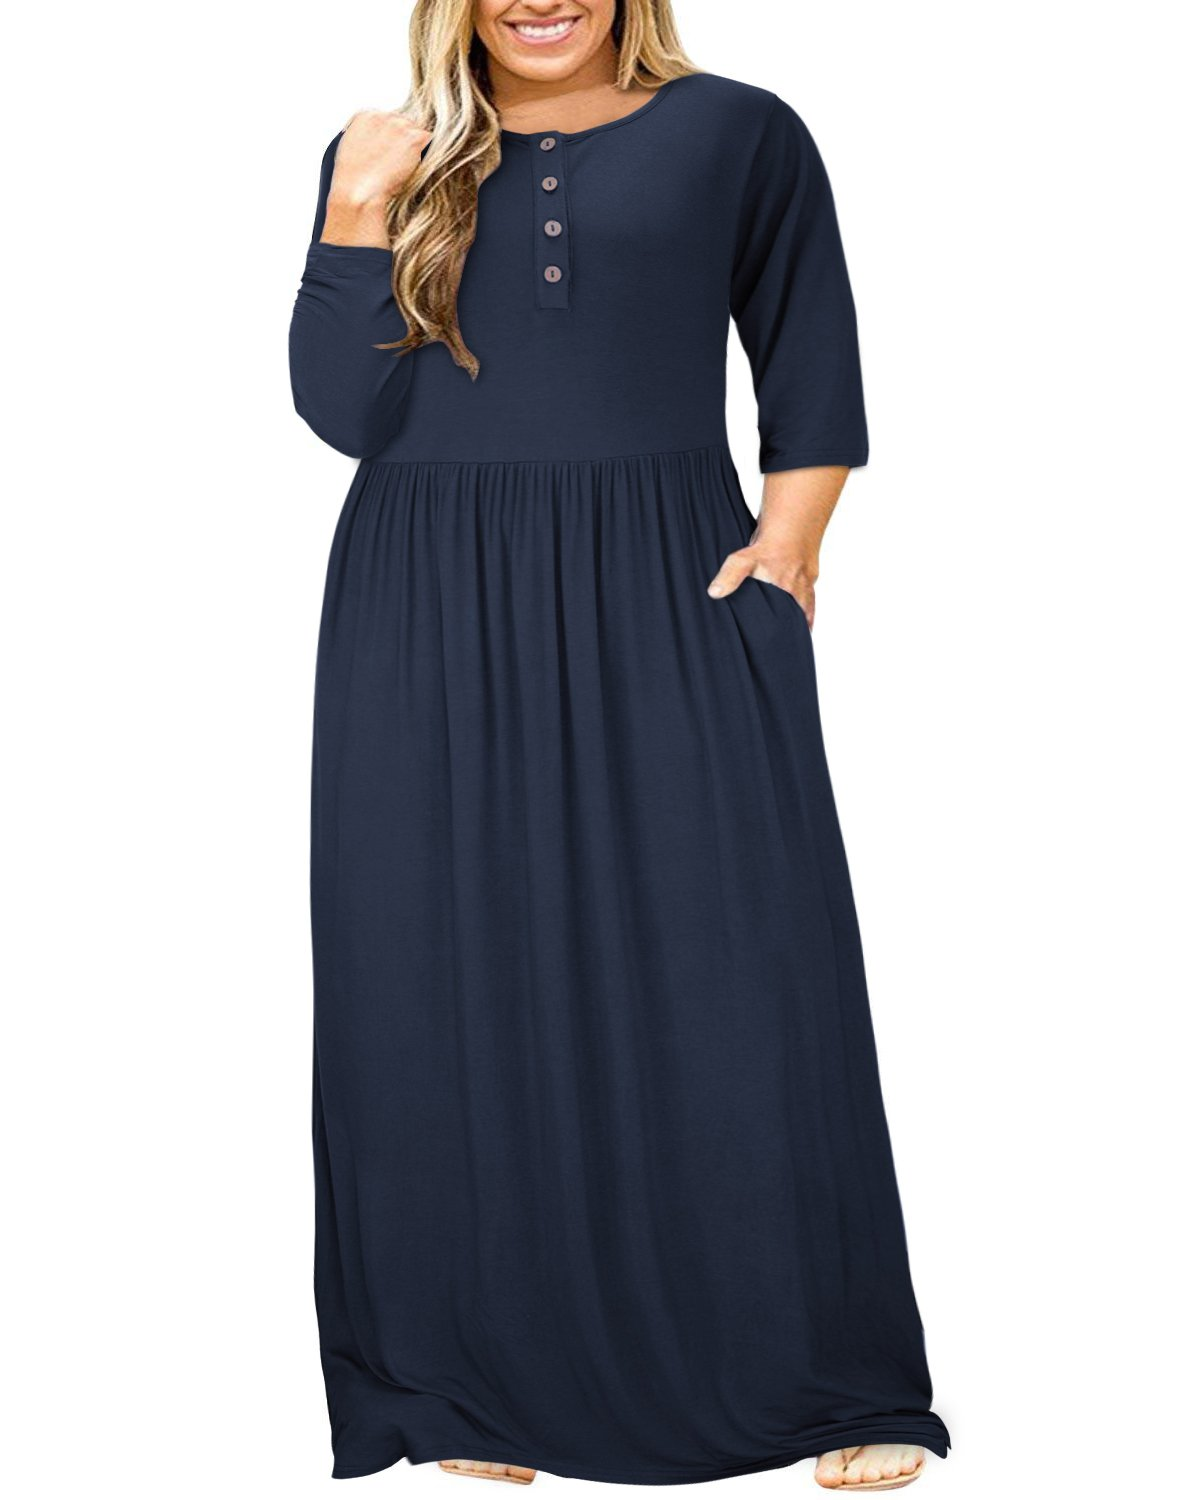 ULTRANICE Women 3/4 Sleeve Plus Size Button Solid Maxi Long Dress with Pockets (Navy,4XL)